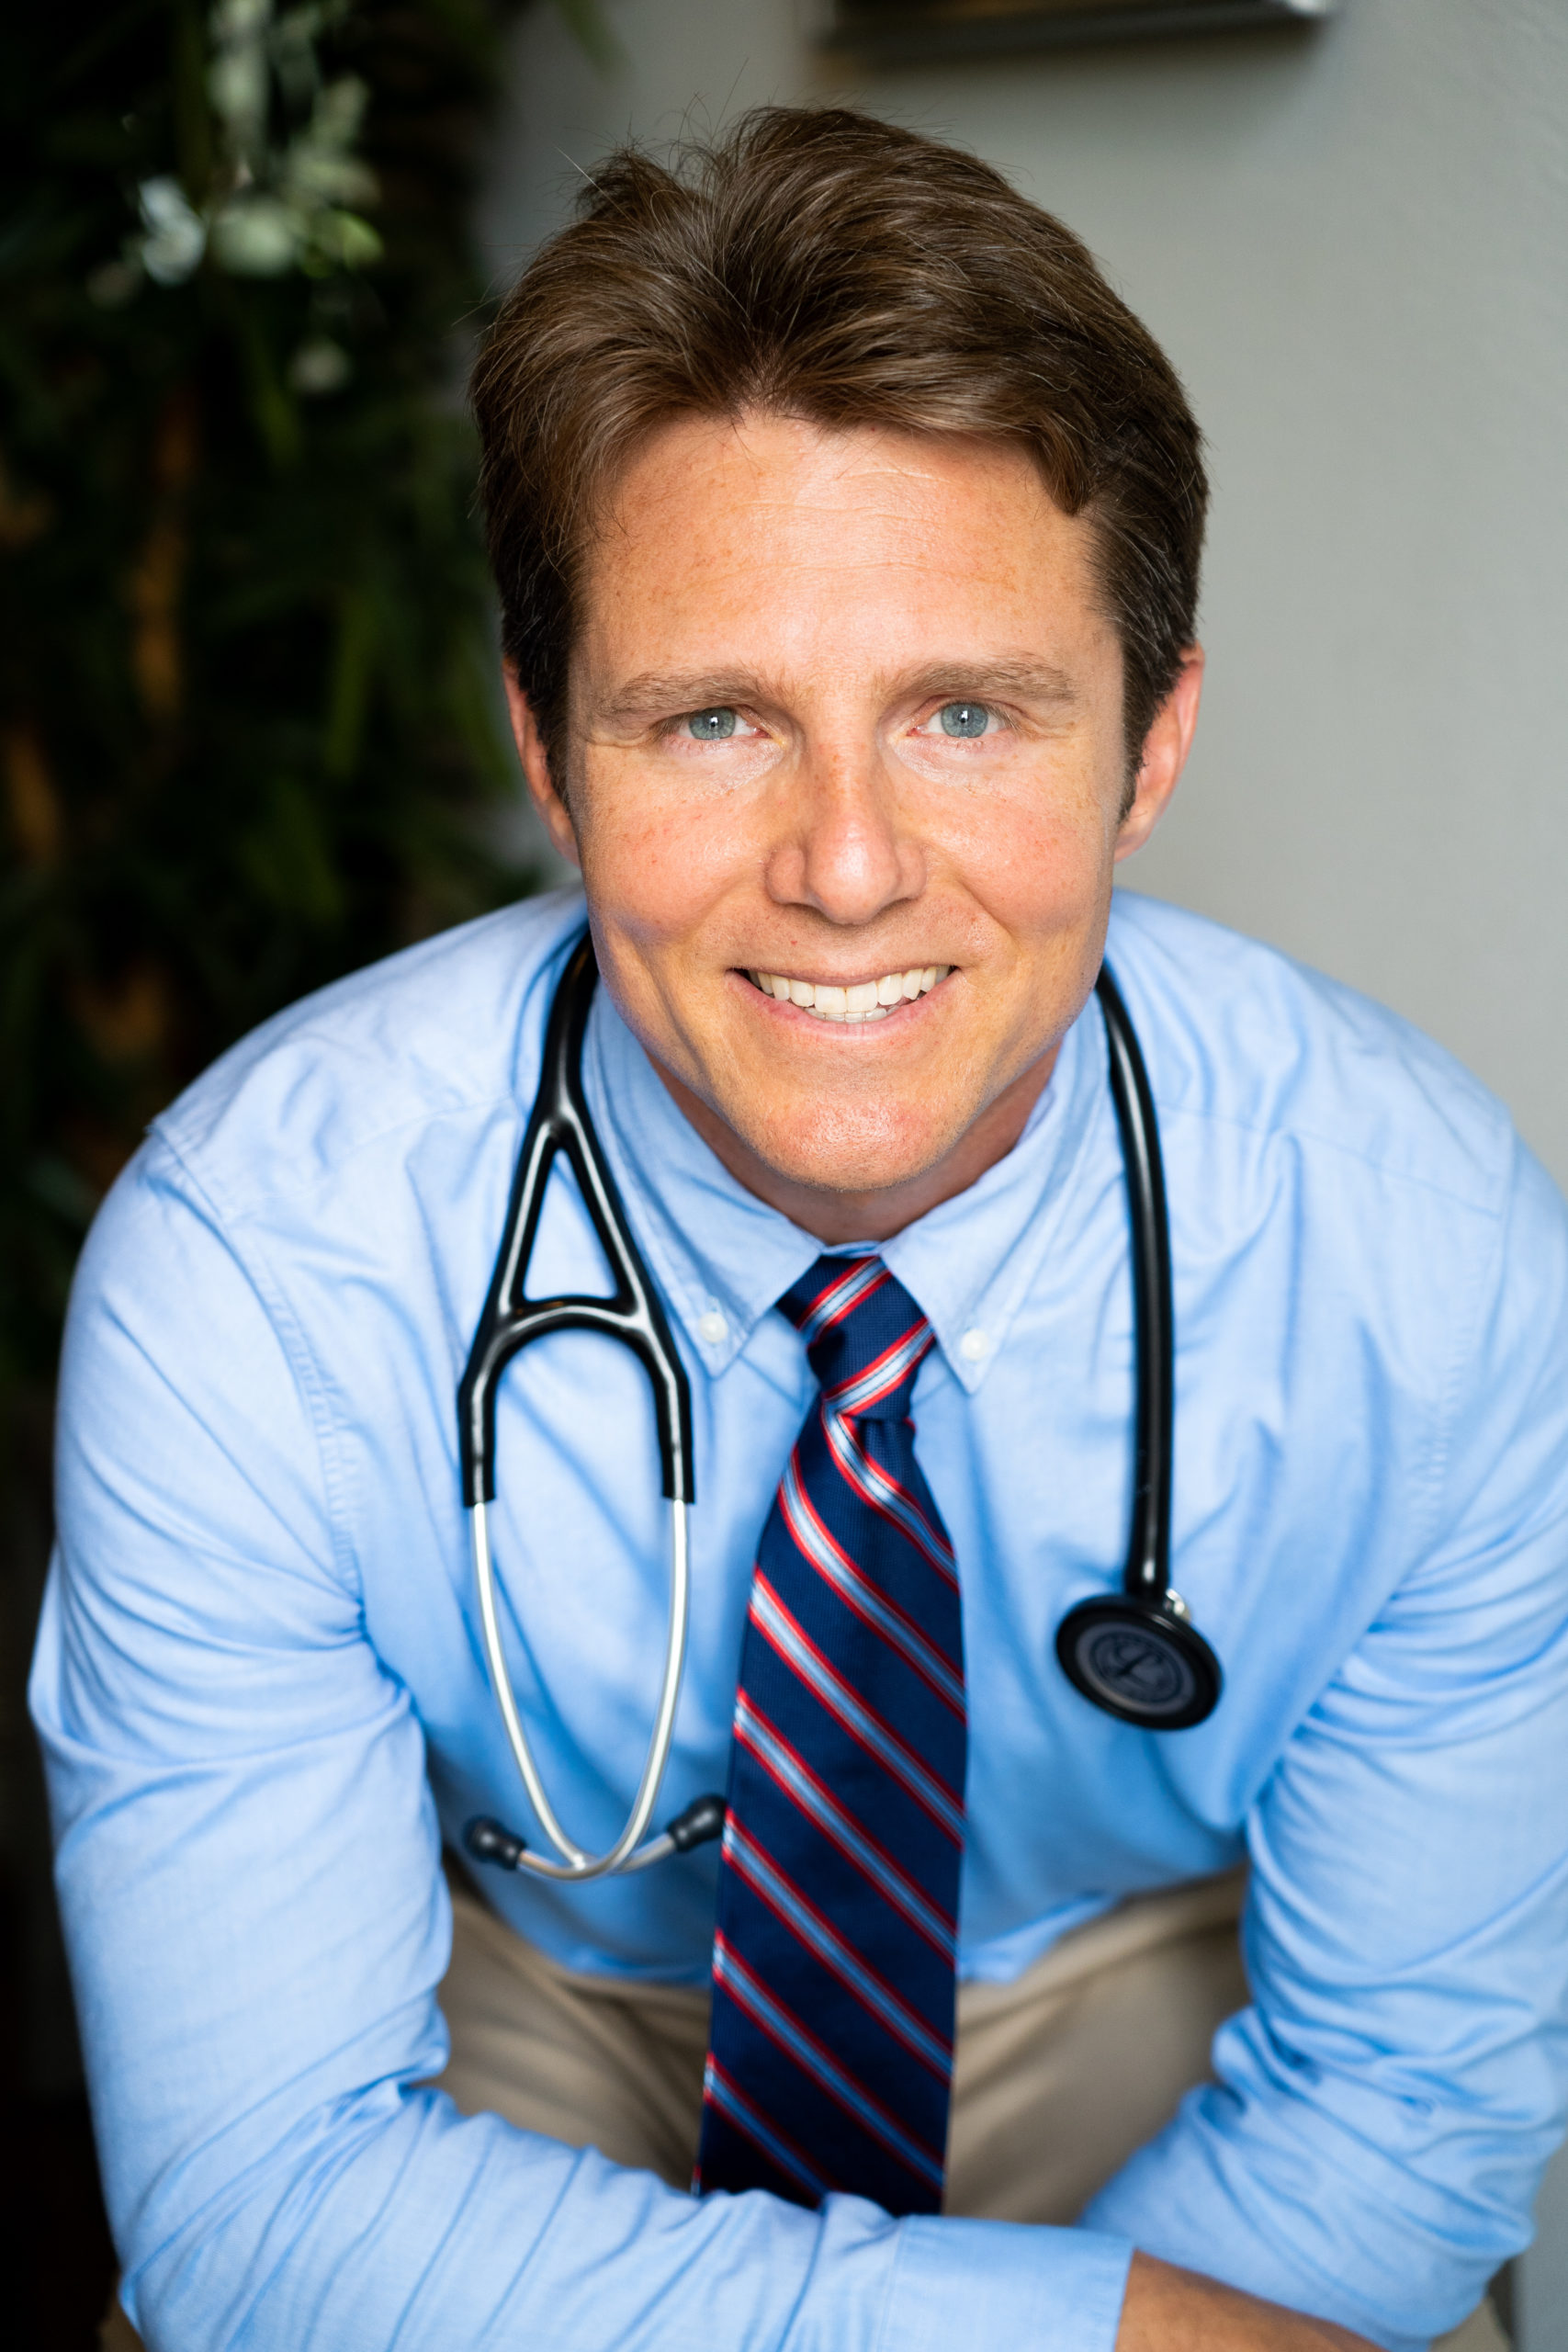 A closeup of Dr. Scott Harrington DO, a vegan doctor, a Plant Based Family Medicine Doctor, it is a head shot and he is wearing a blue shirt with a blue and red tie. He is wearing a stethoscope.